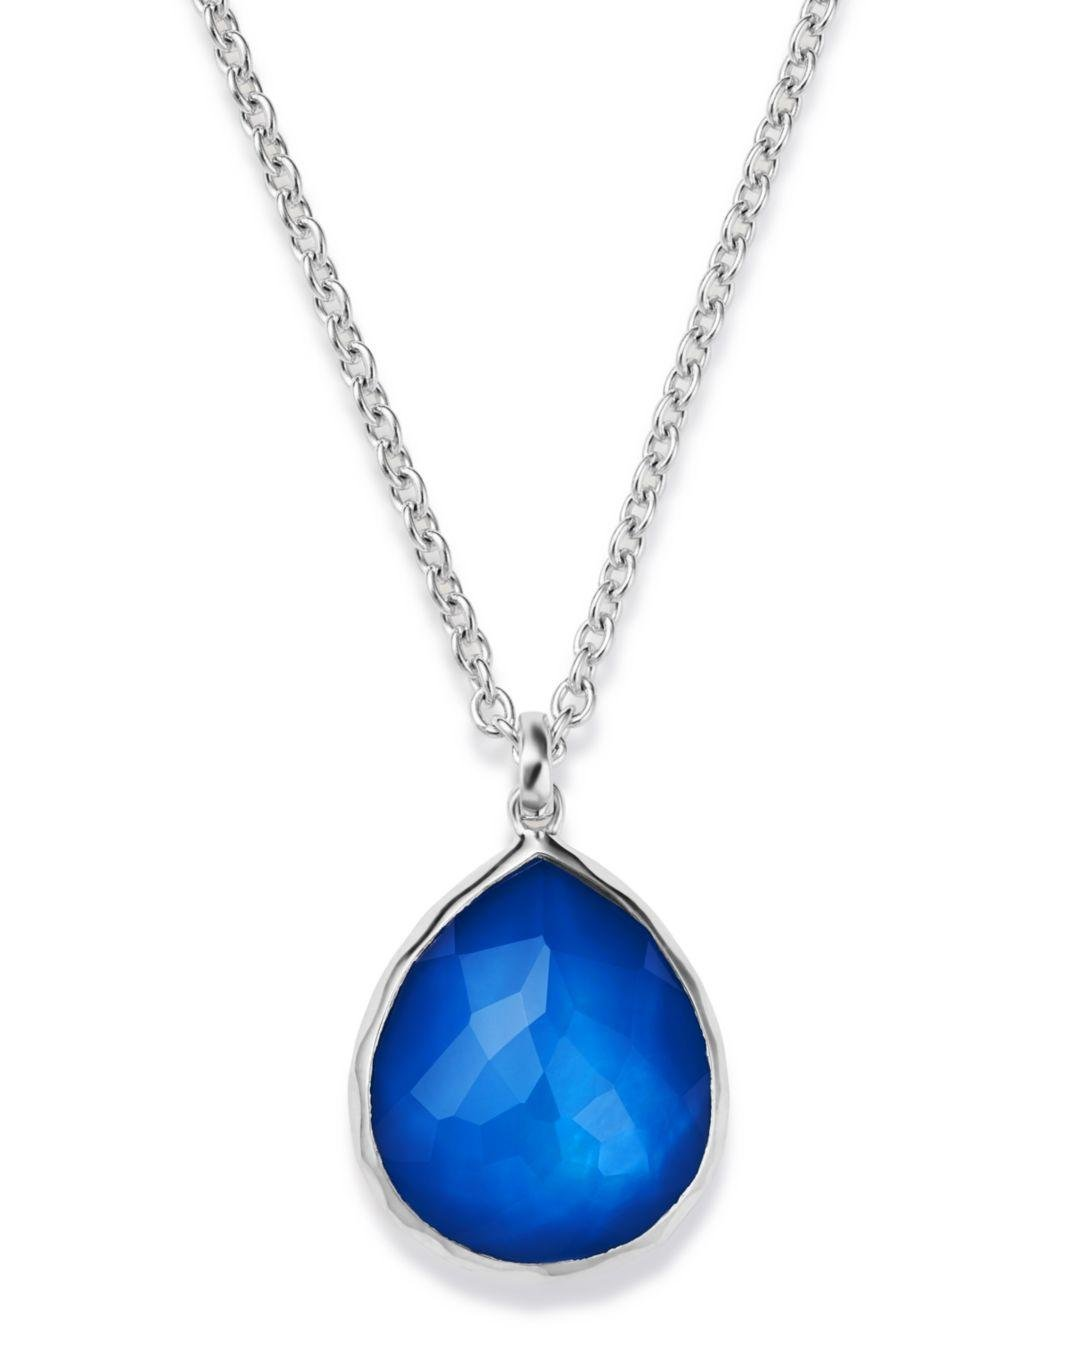 Ippolita Sterling Silver Wonderland Mother - Of - Pearl Doublet Mini Pendant Necklace in Blue/Silver (Blue)